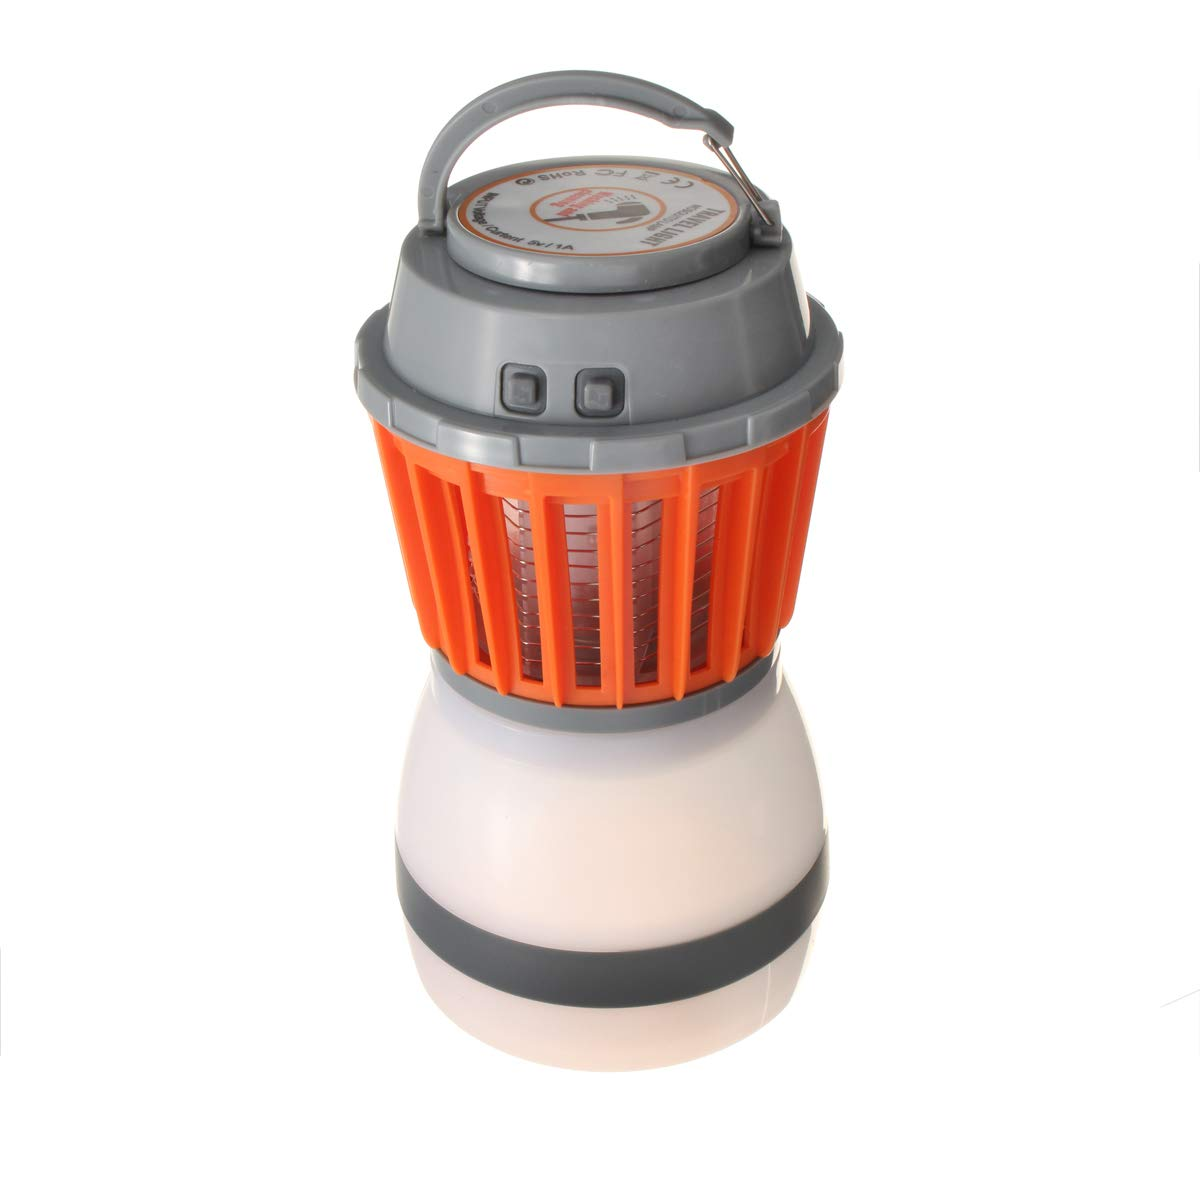 3 Modes LED Light Mosquito Killer Lamp Fly Bug Traps Zapper Camping Light Garden Home Pest Control Tools USB Charging Lamp